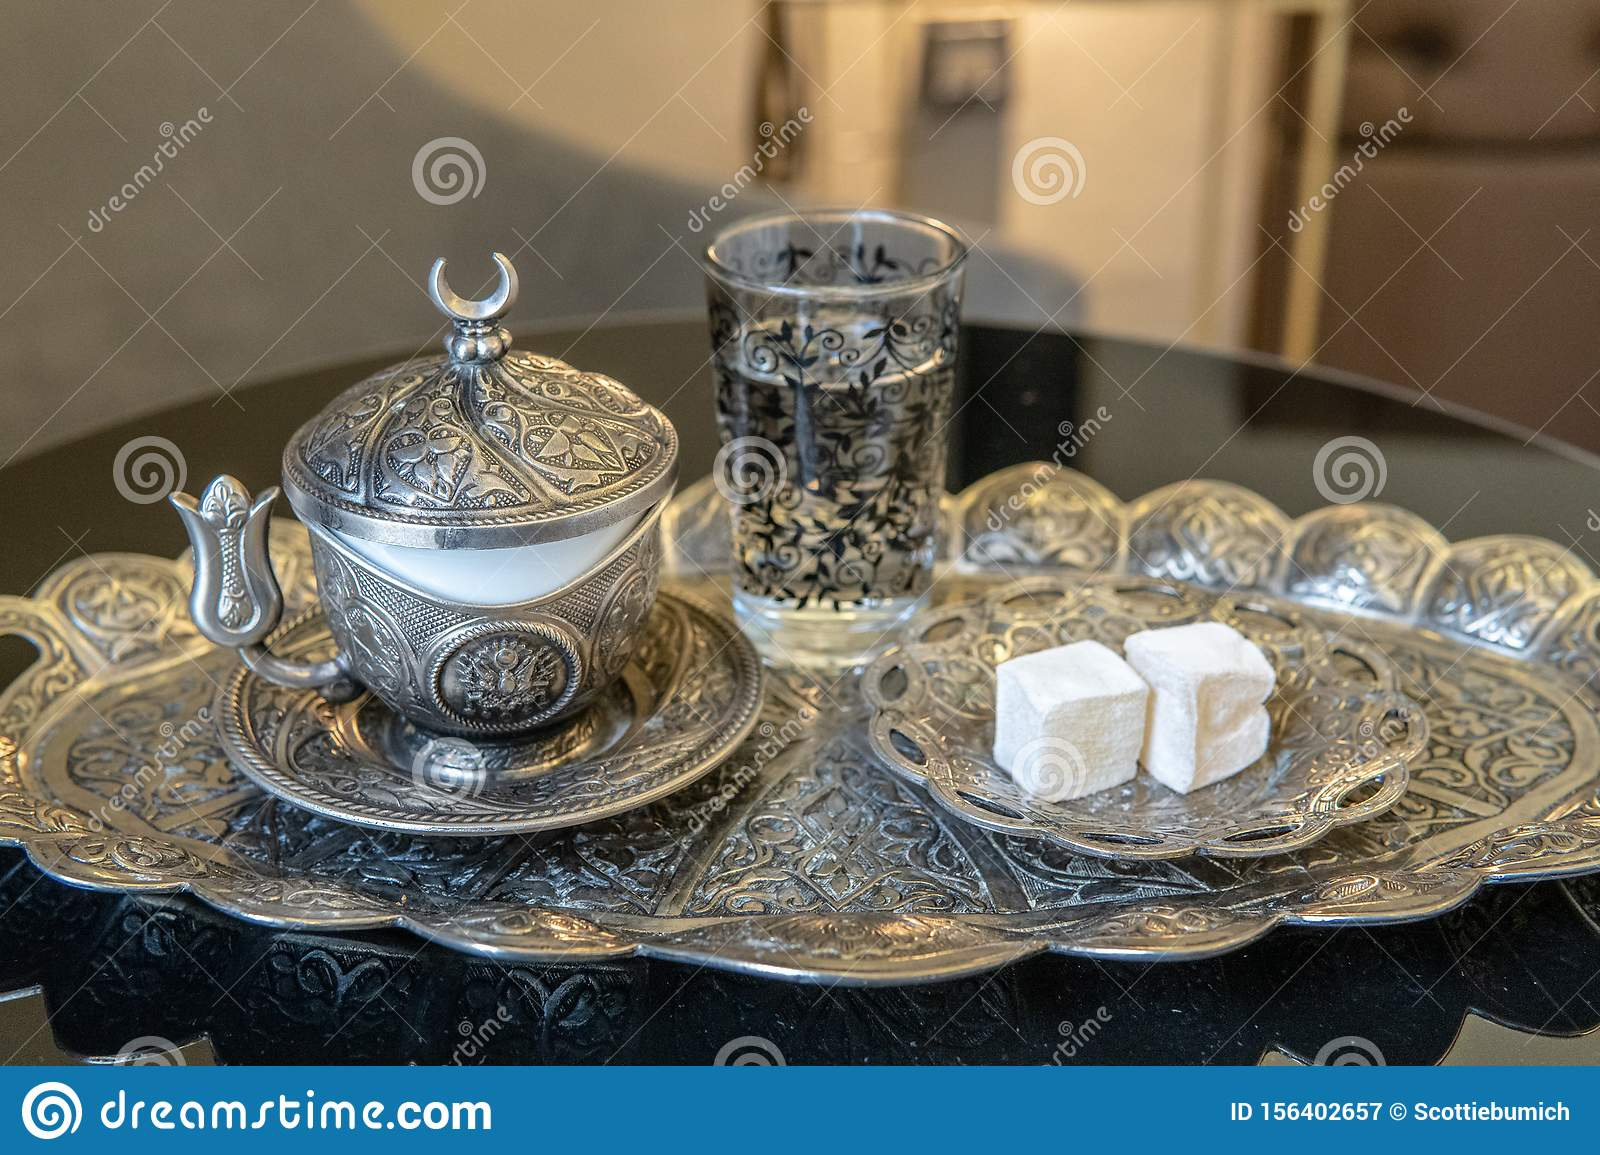 Turkish Coffee And Lokum On Silver Plate Stock Image Image Of Style Colored 156402657